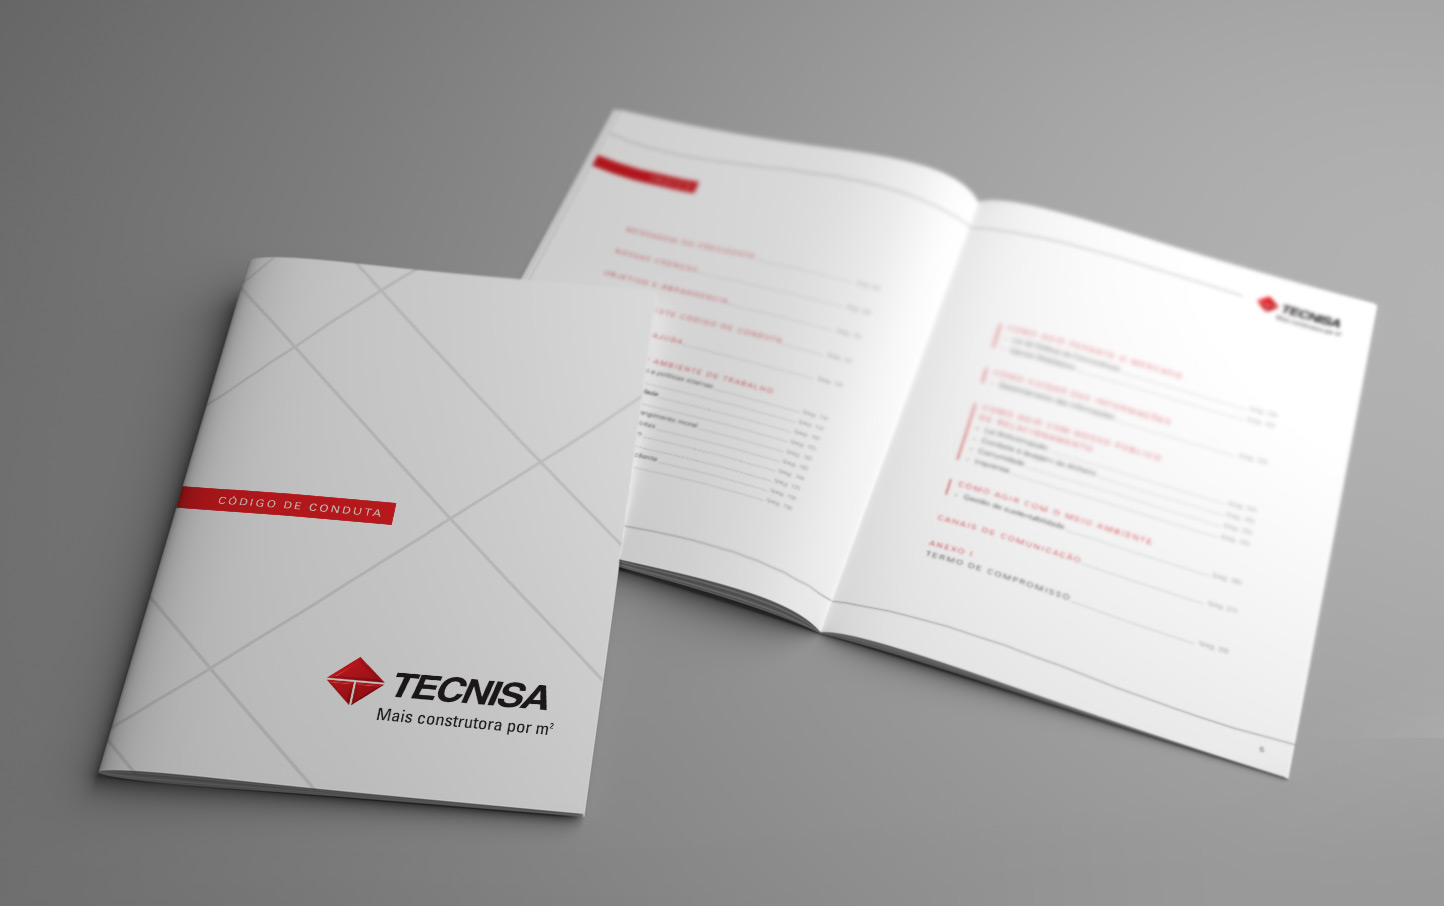 Endomarketing TECNISA